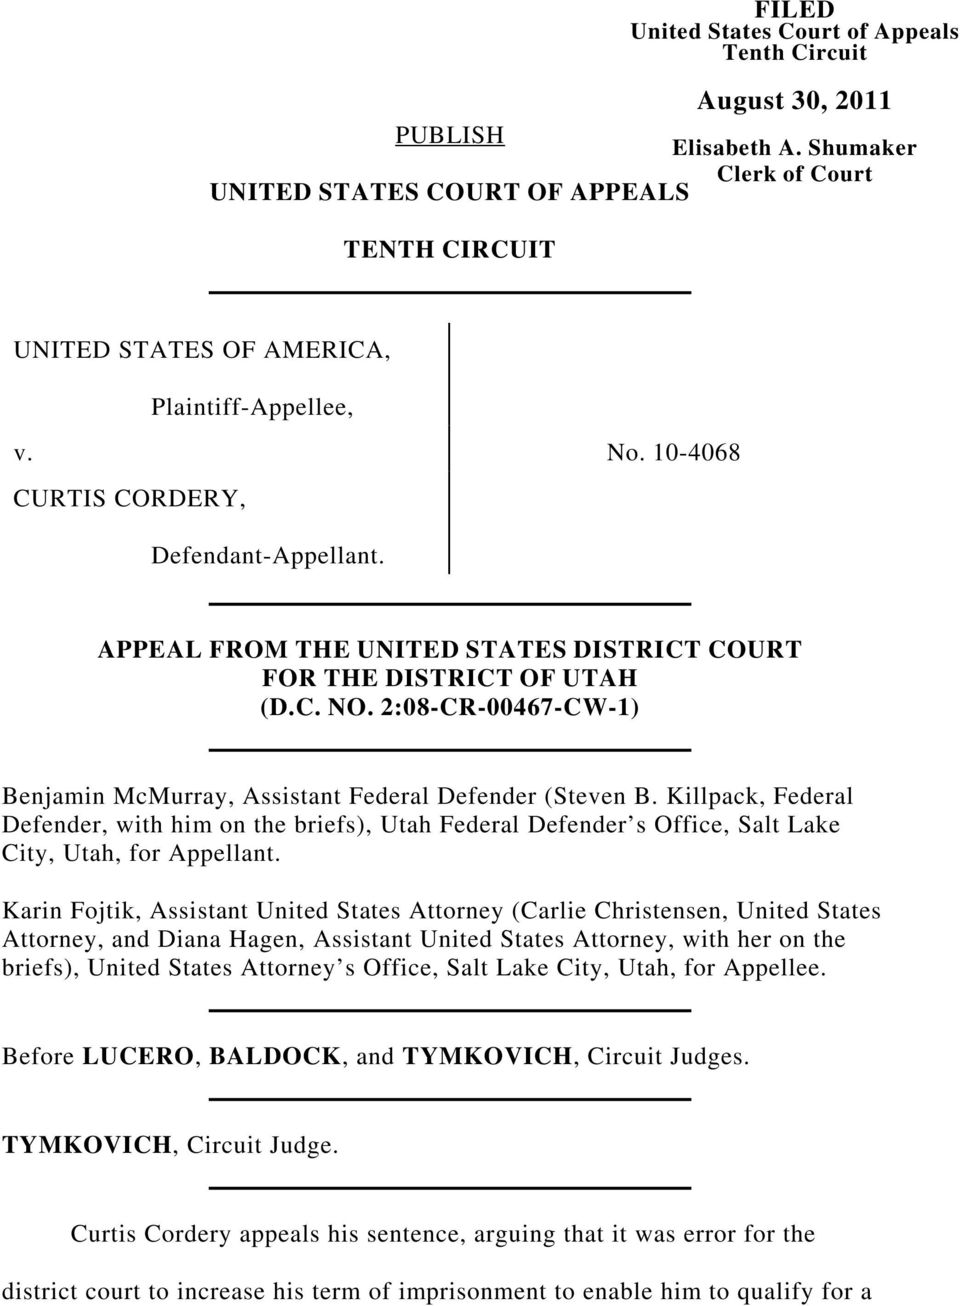 APPEAL FROM THE UNITED STATES DISTRICT COURT FOR THE DISTRICT OF UTAH (D.C. NO. 2:08-CR-00467-CW-1) Benjamin McMurray, Assistant Federal Defender (Steven B.